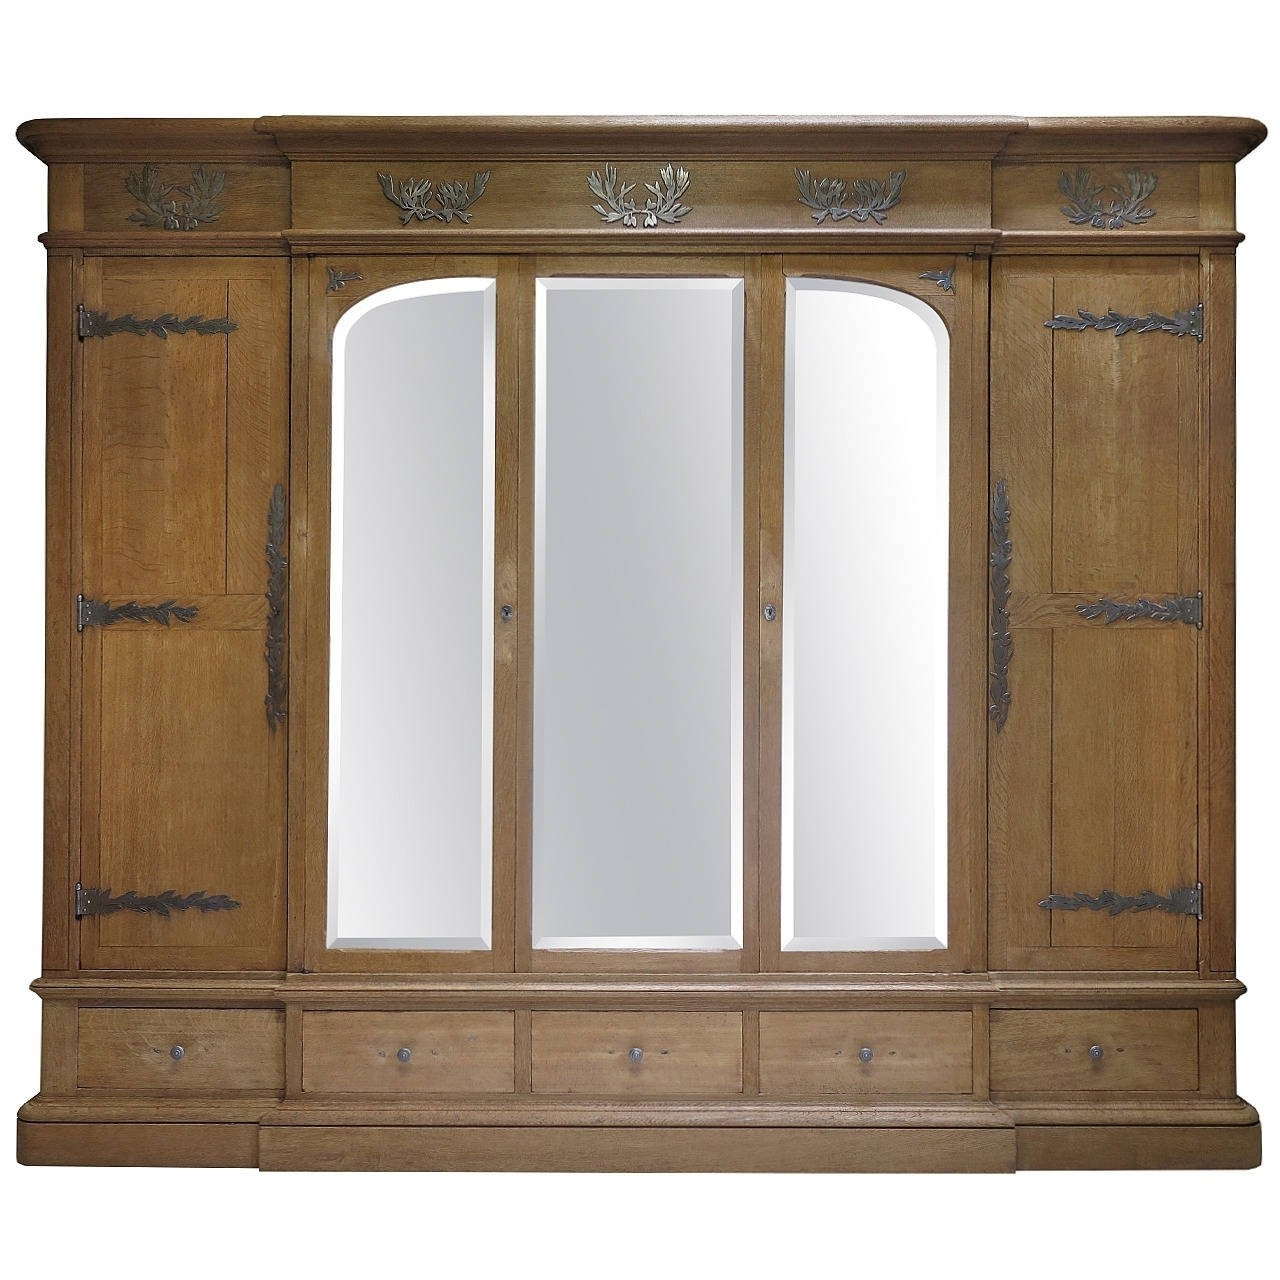 Oak Wardrobes For Sale Inside Famous Solid Oak Wardrobe With Olive Leaf Motif Hardware, France, Early (View 10 of 15)